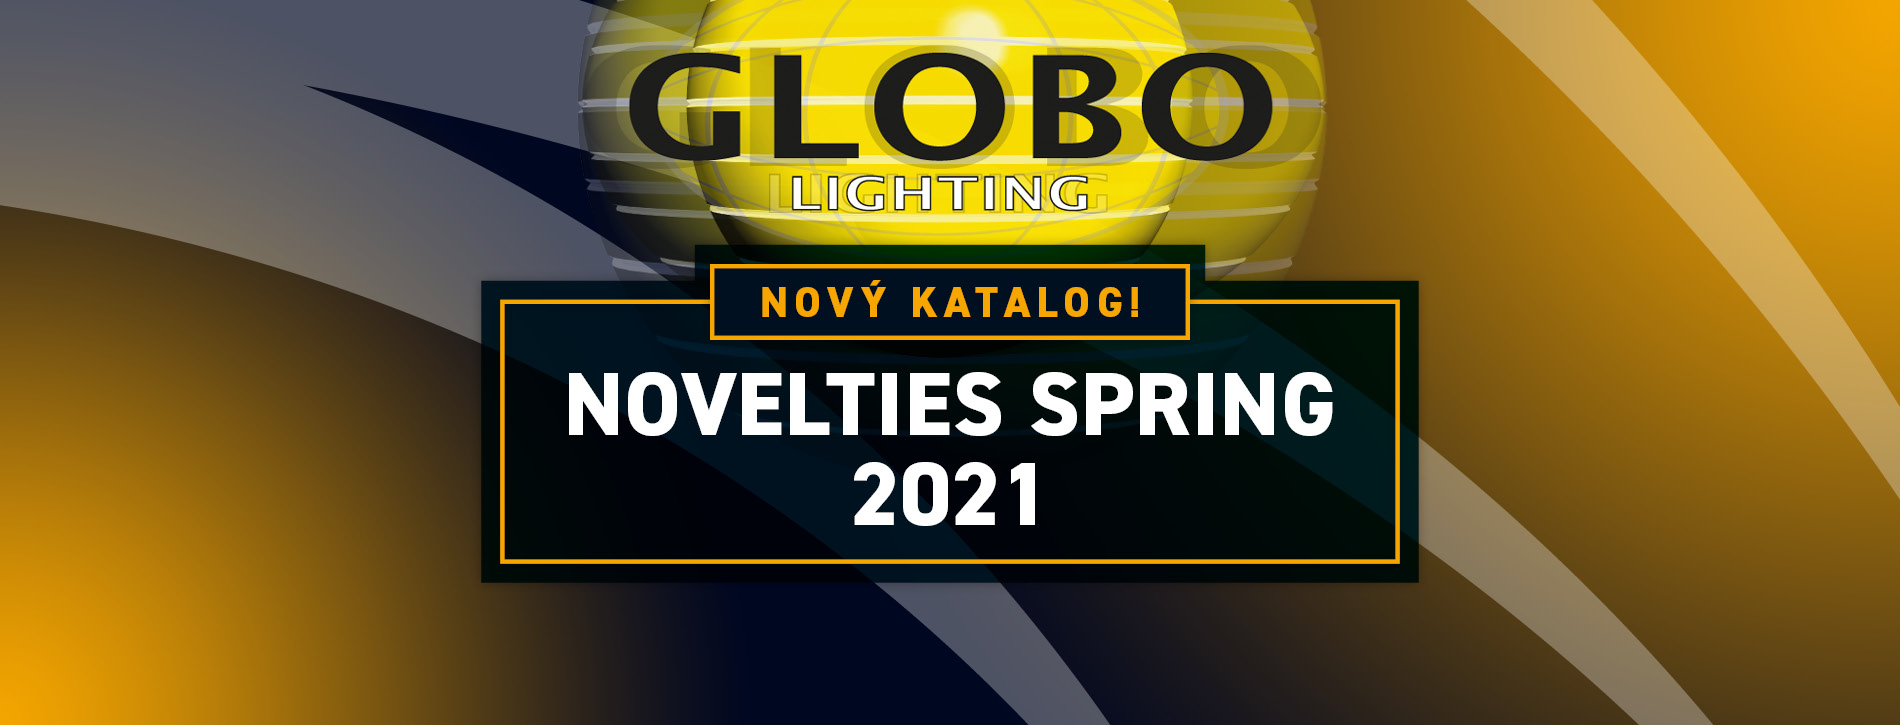 Novelties Spring 2021